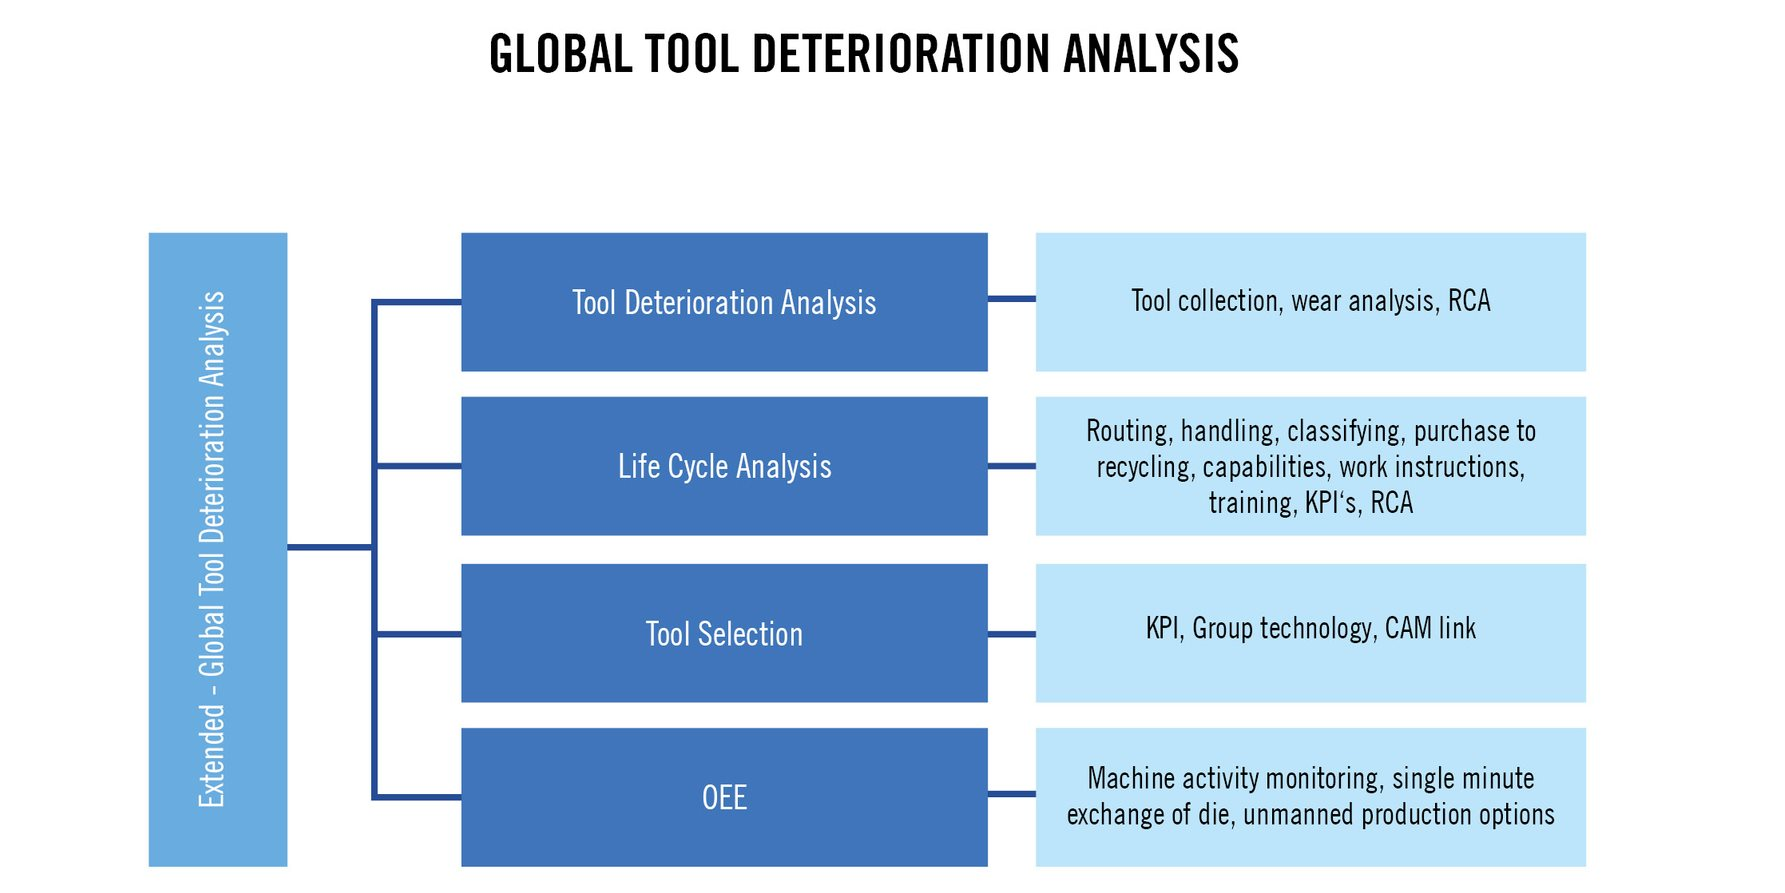 Global tool deterioration analysis